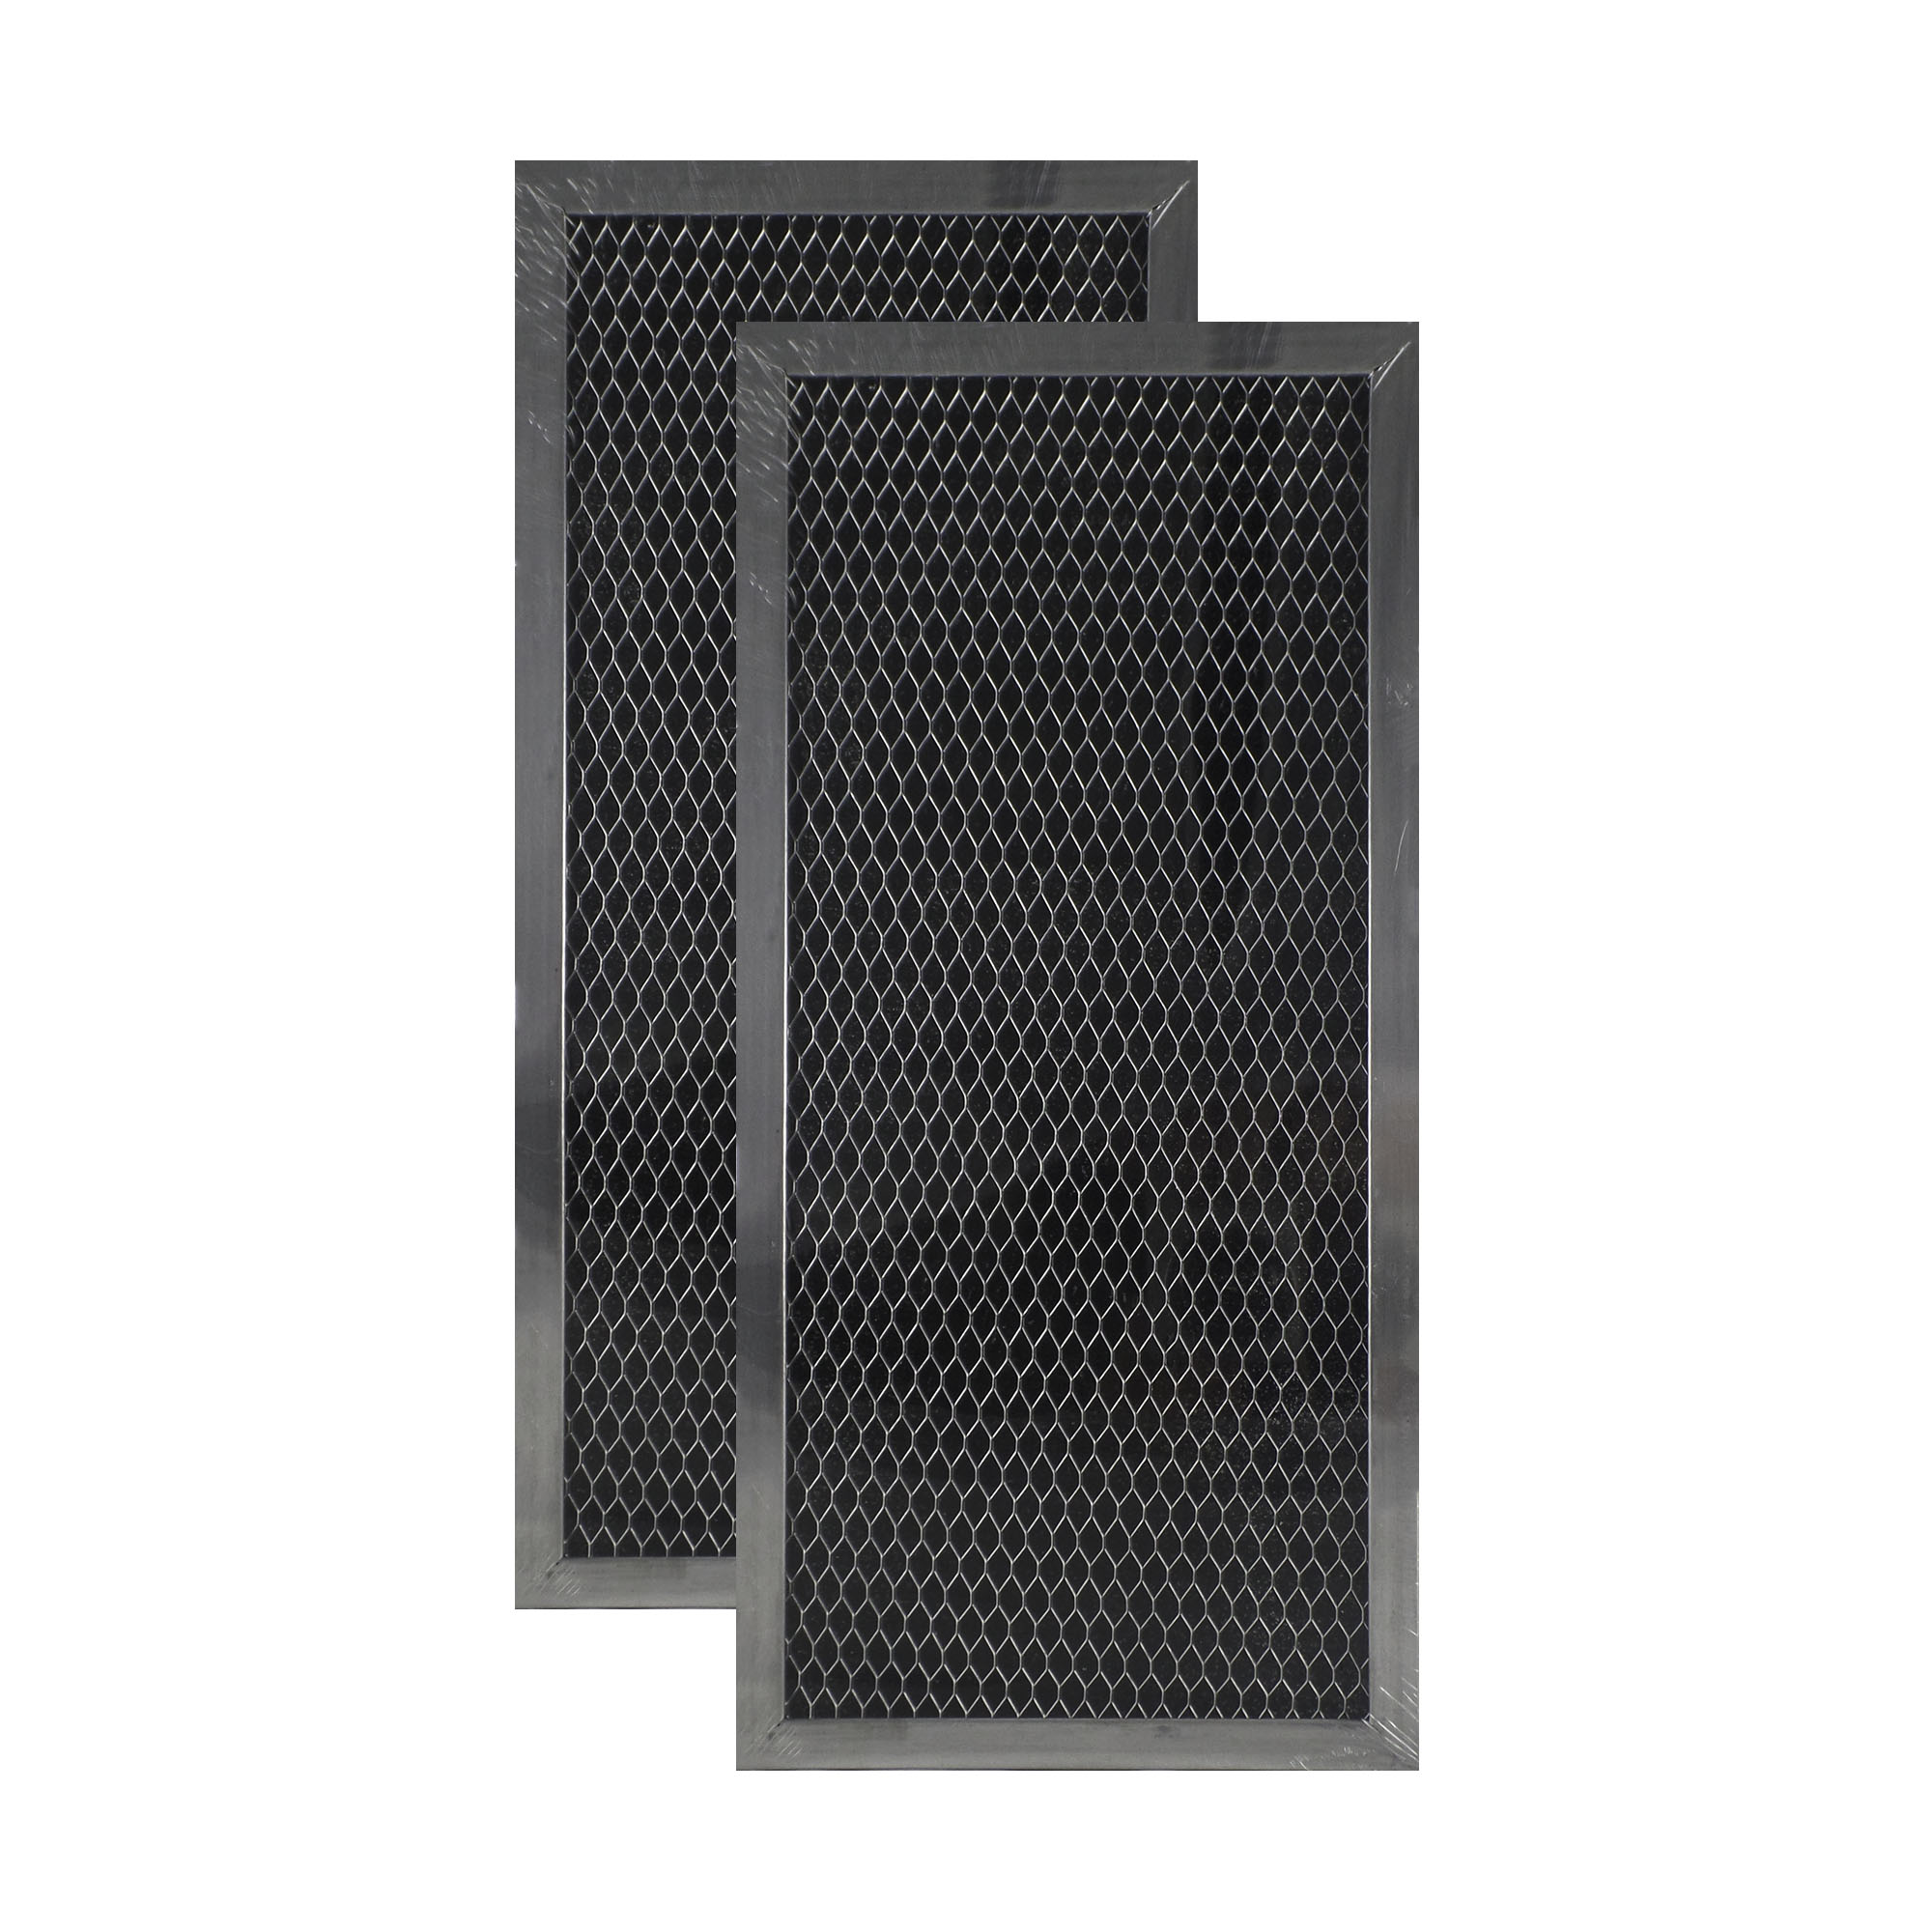 2 PACK 206800 GE Microwave Charcoal Carbon Filter Replacements by Air Filter ...